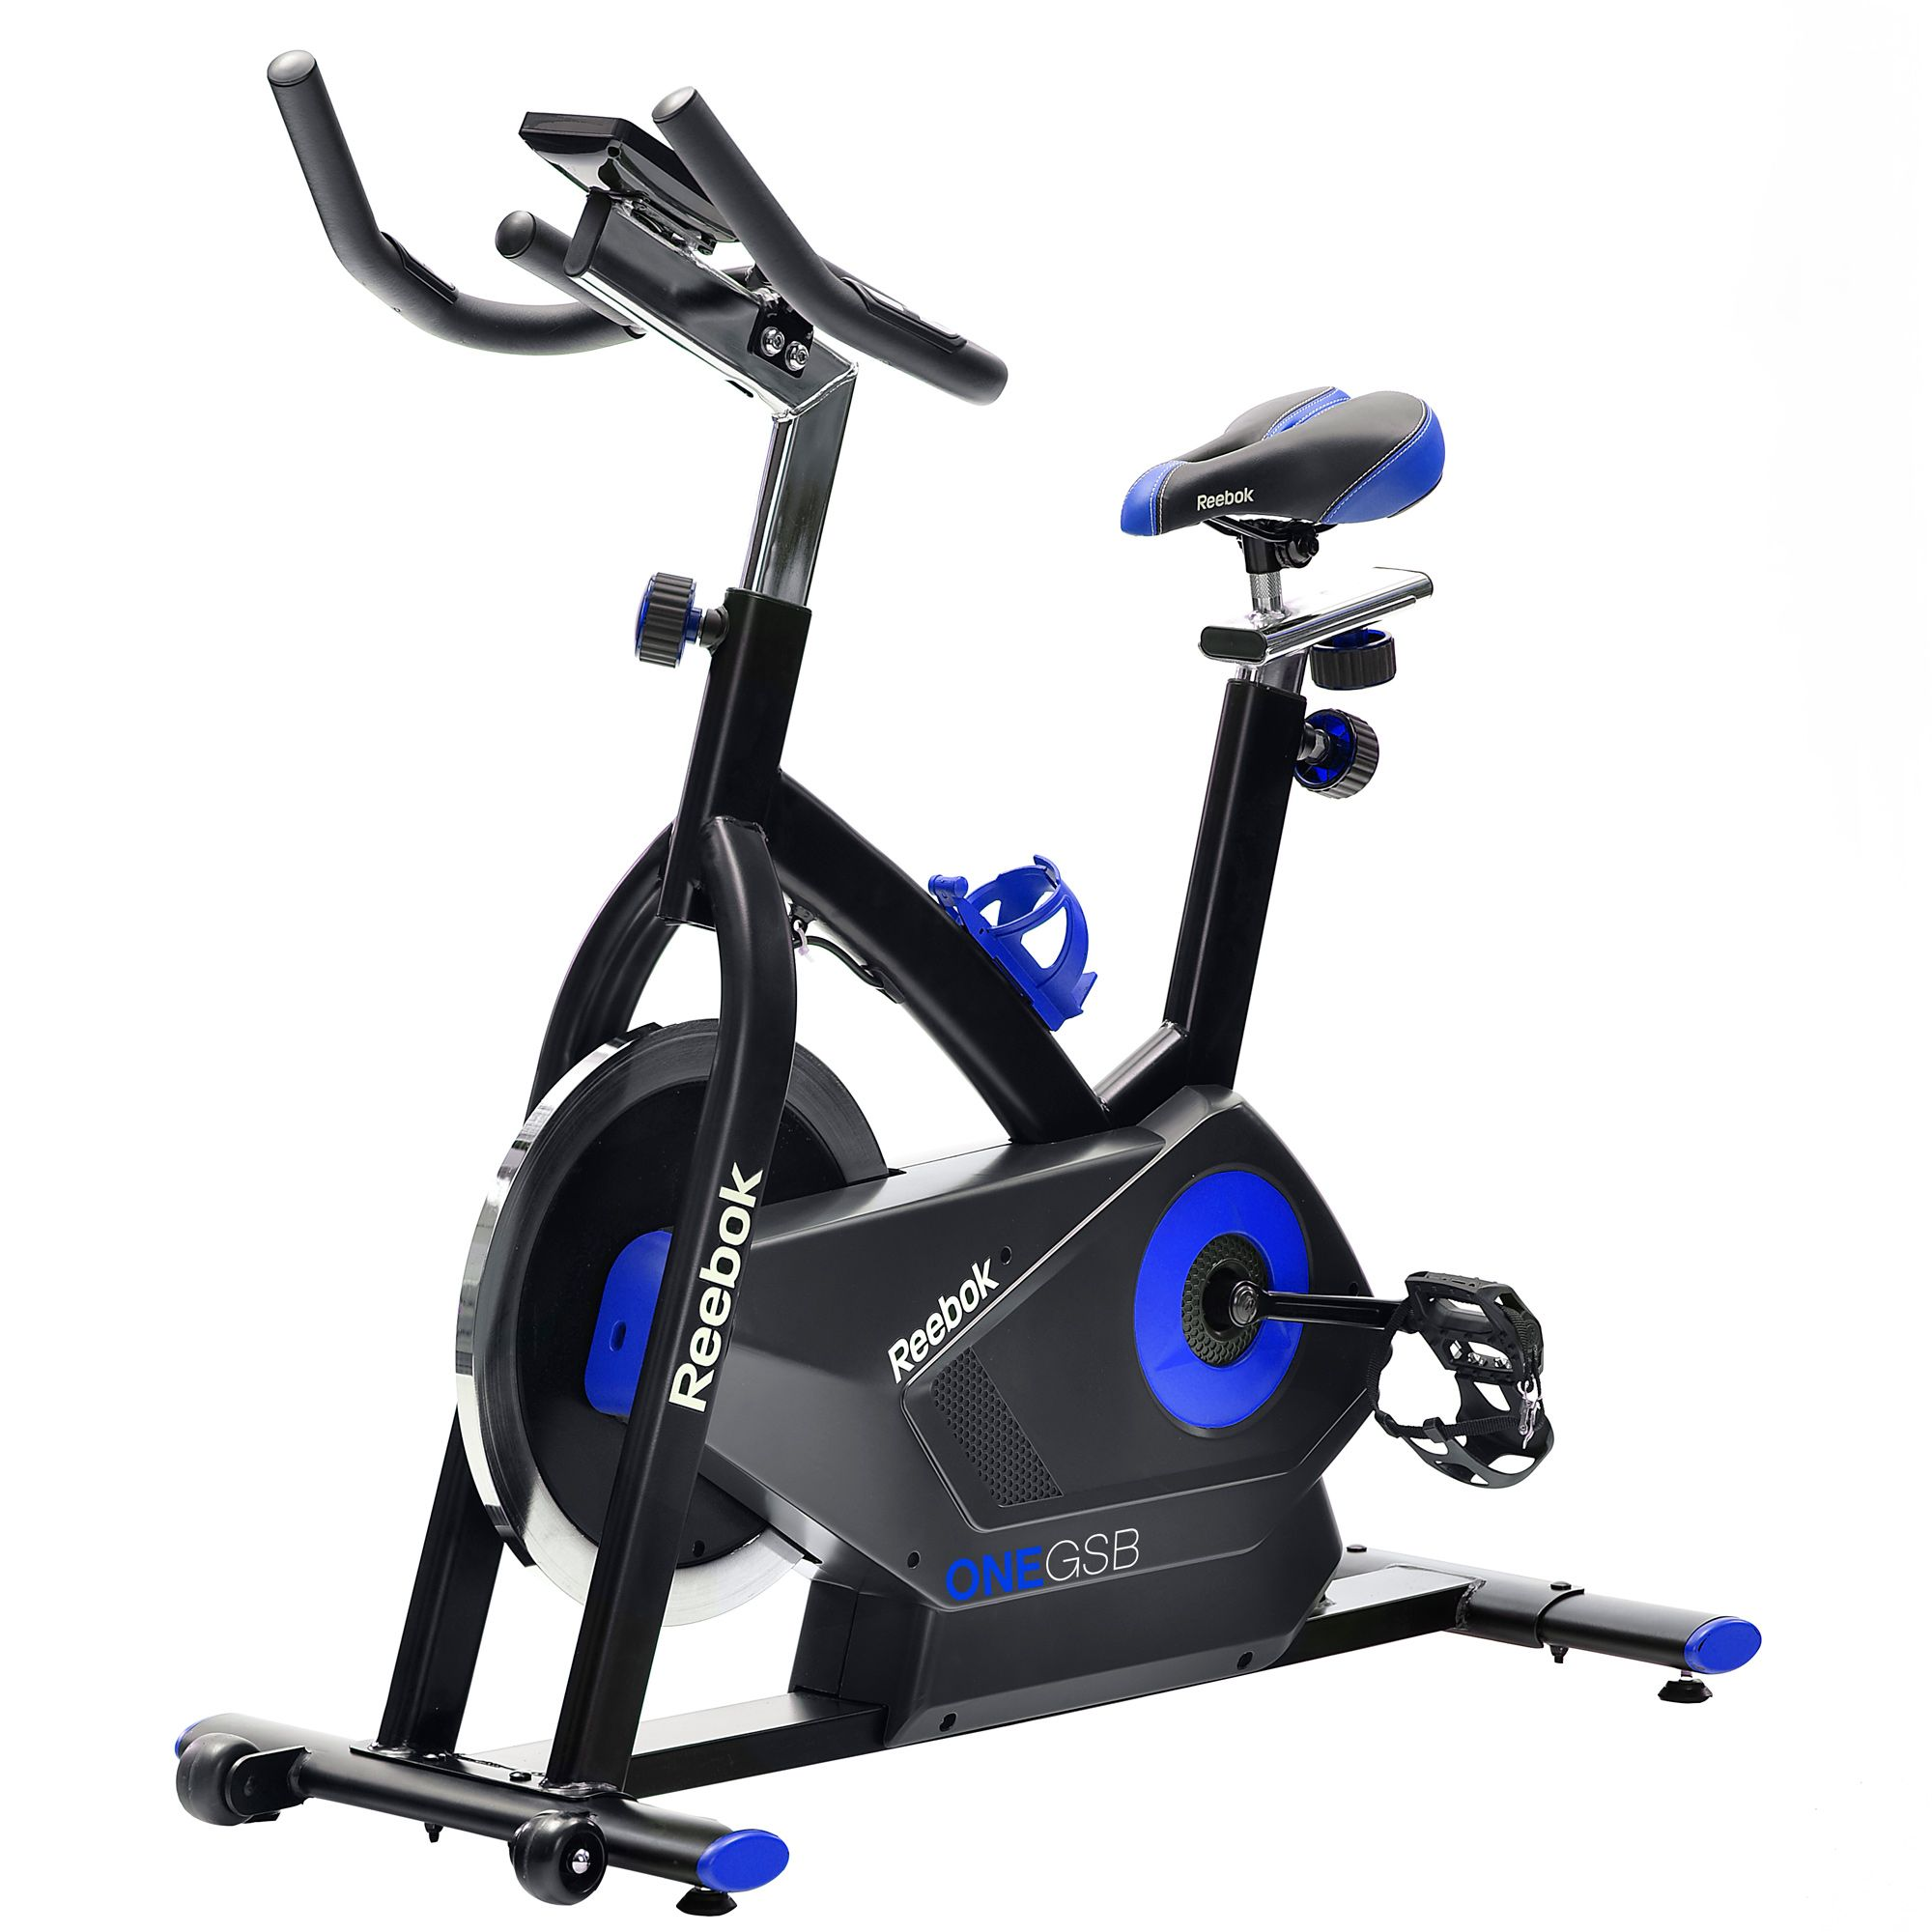 Reebok One GSB Exercise Bike - Sweatband.com